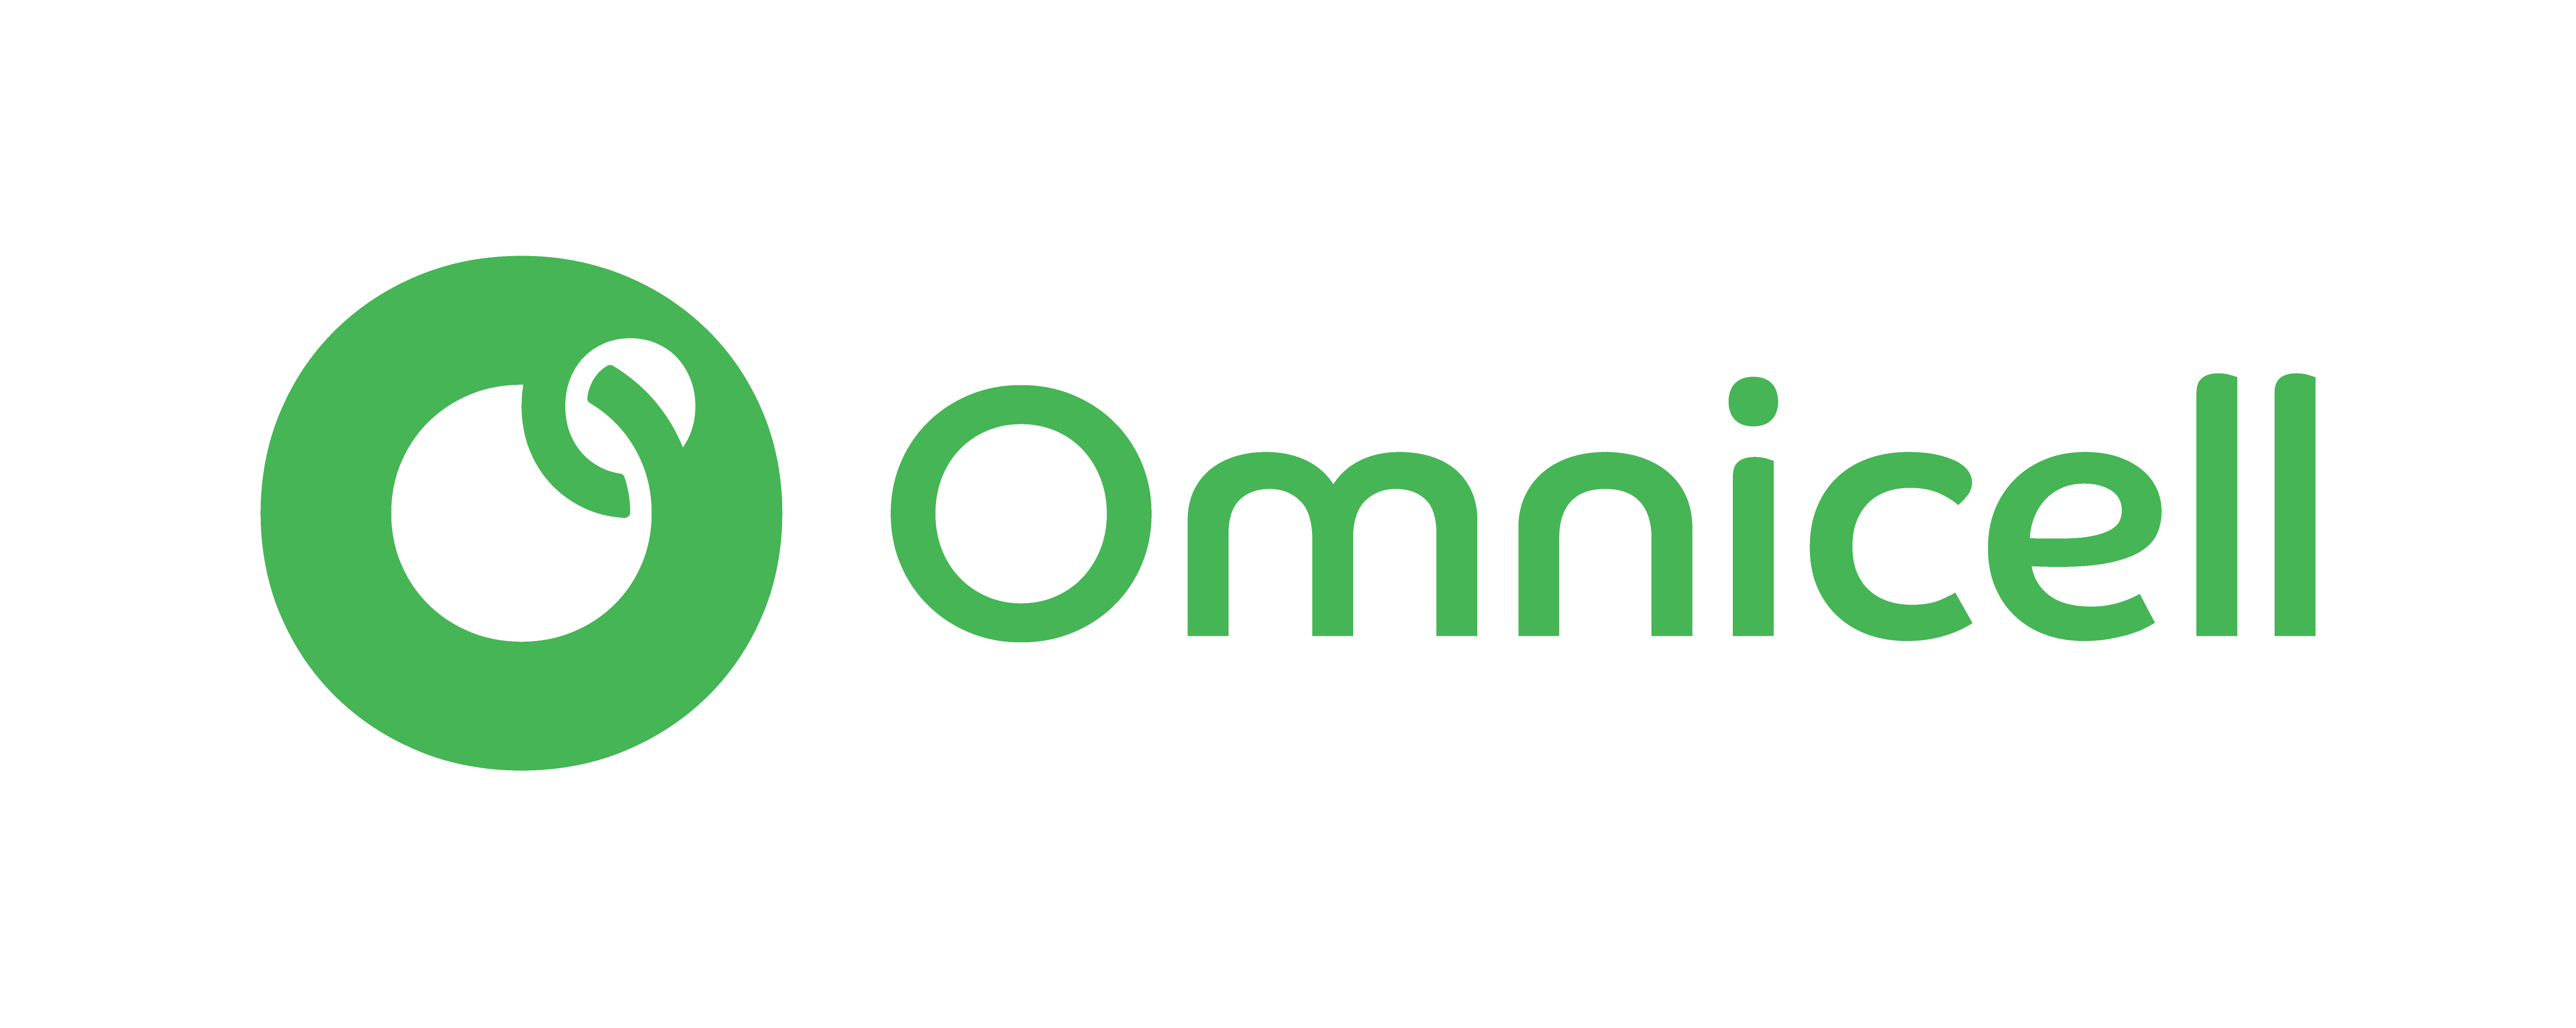 Omnicell is a proud sponsor of the ONL 2020 Annual Meeting